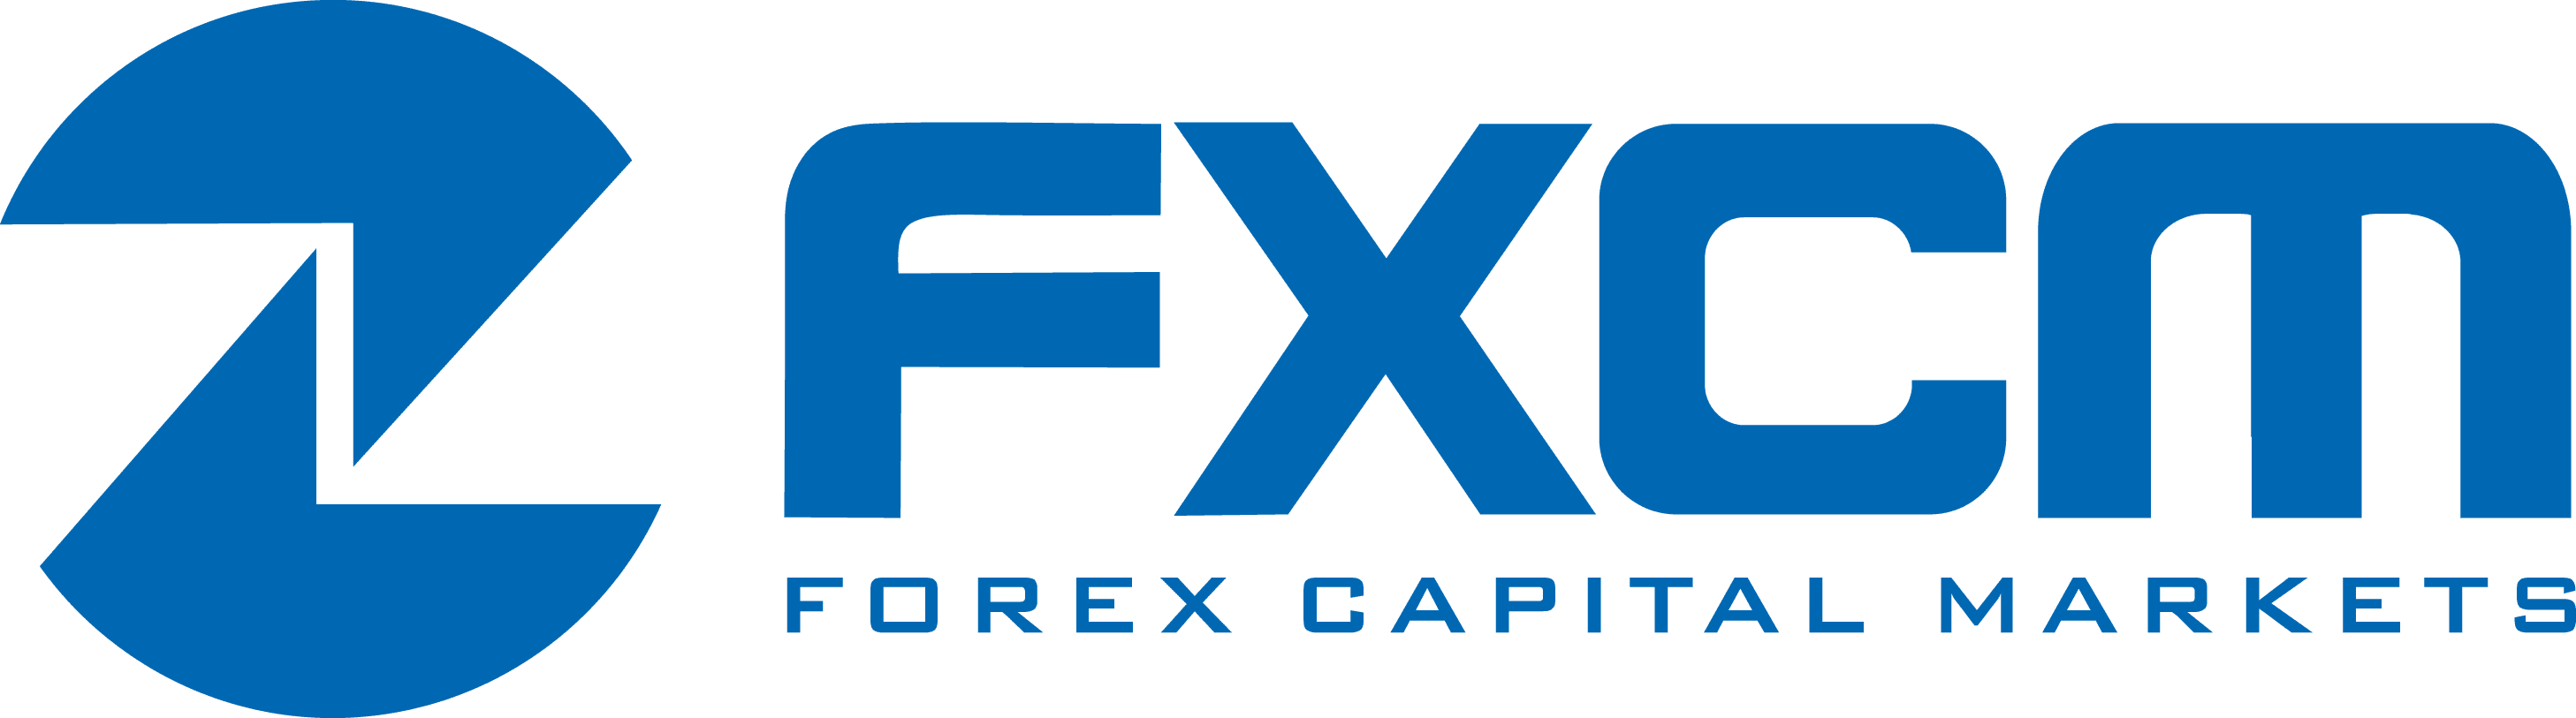 Relief for FXCM as US Court Rejects Black Swan Lawsuit Plea